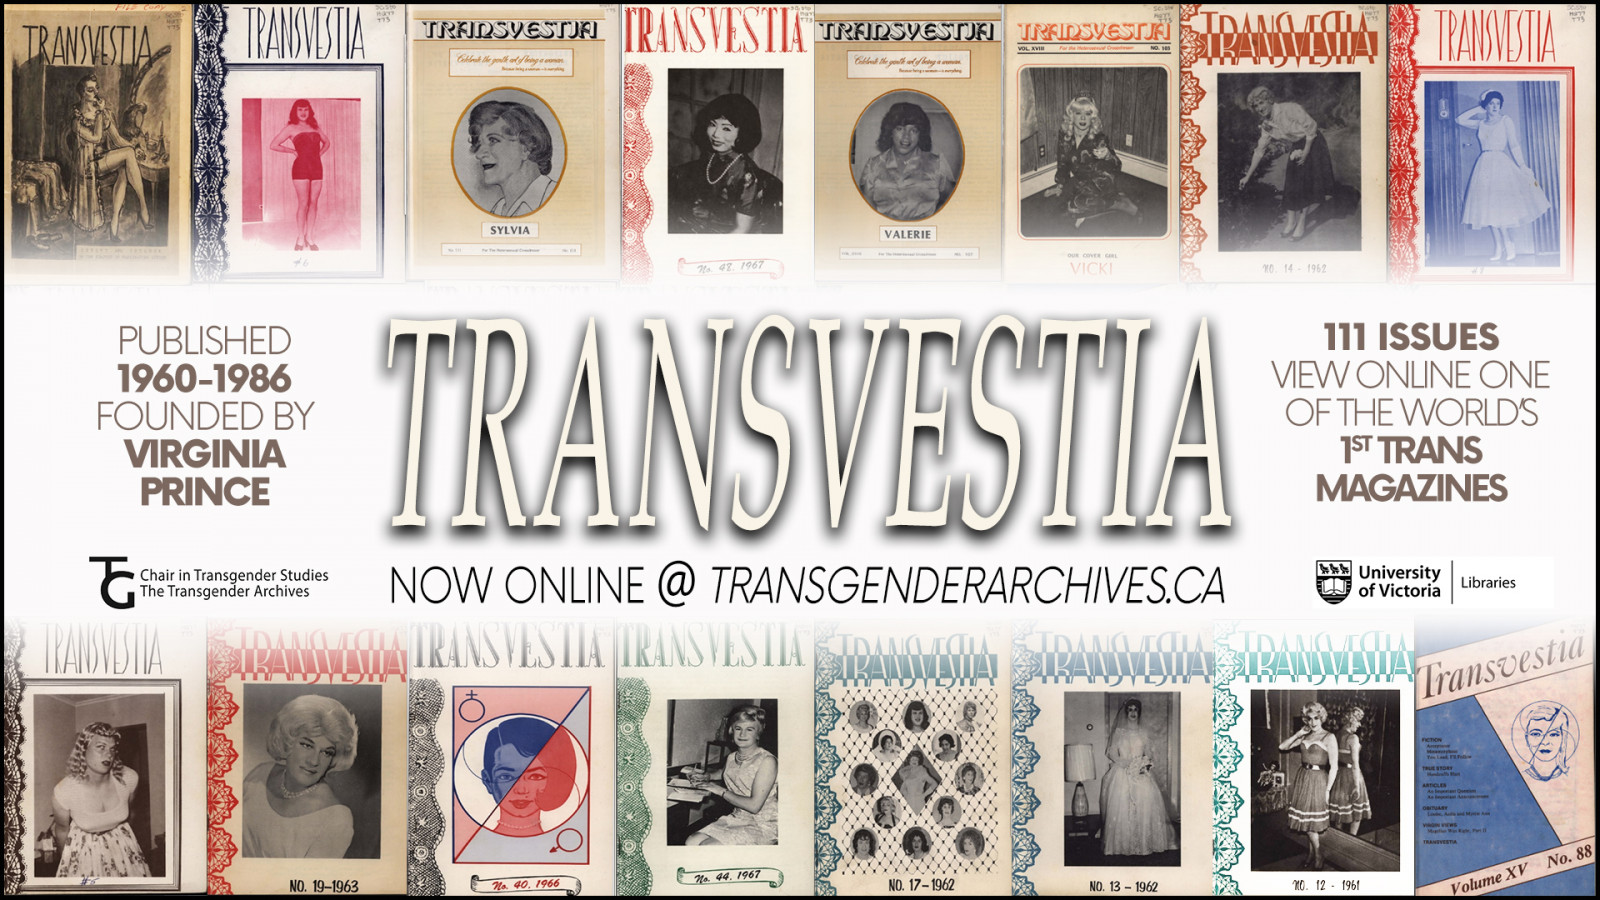 Photo montage of Transvestia magazine covers